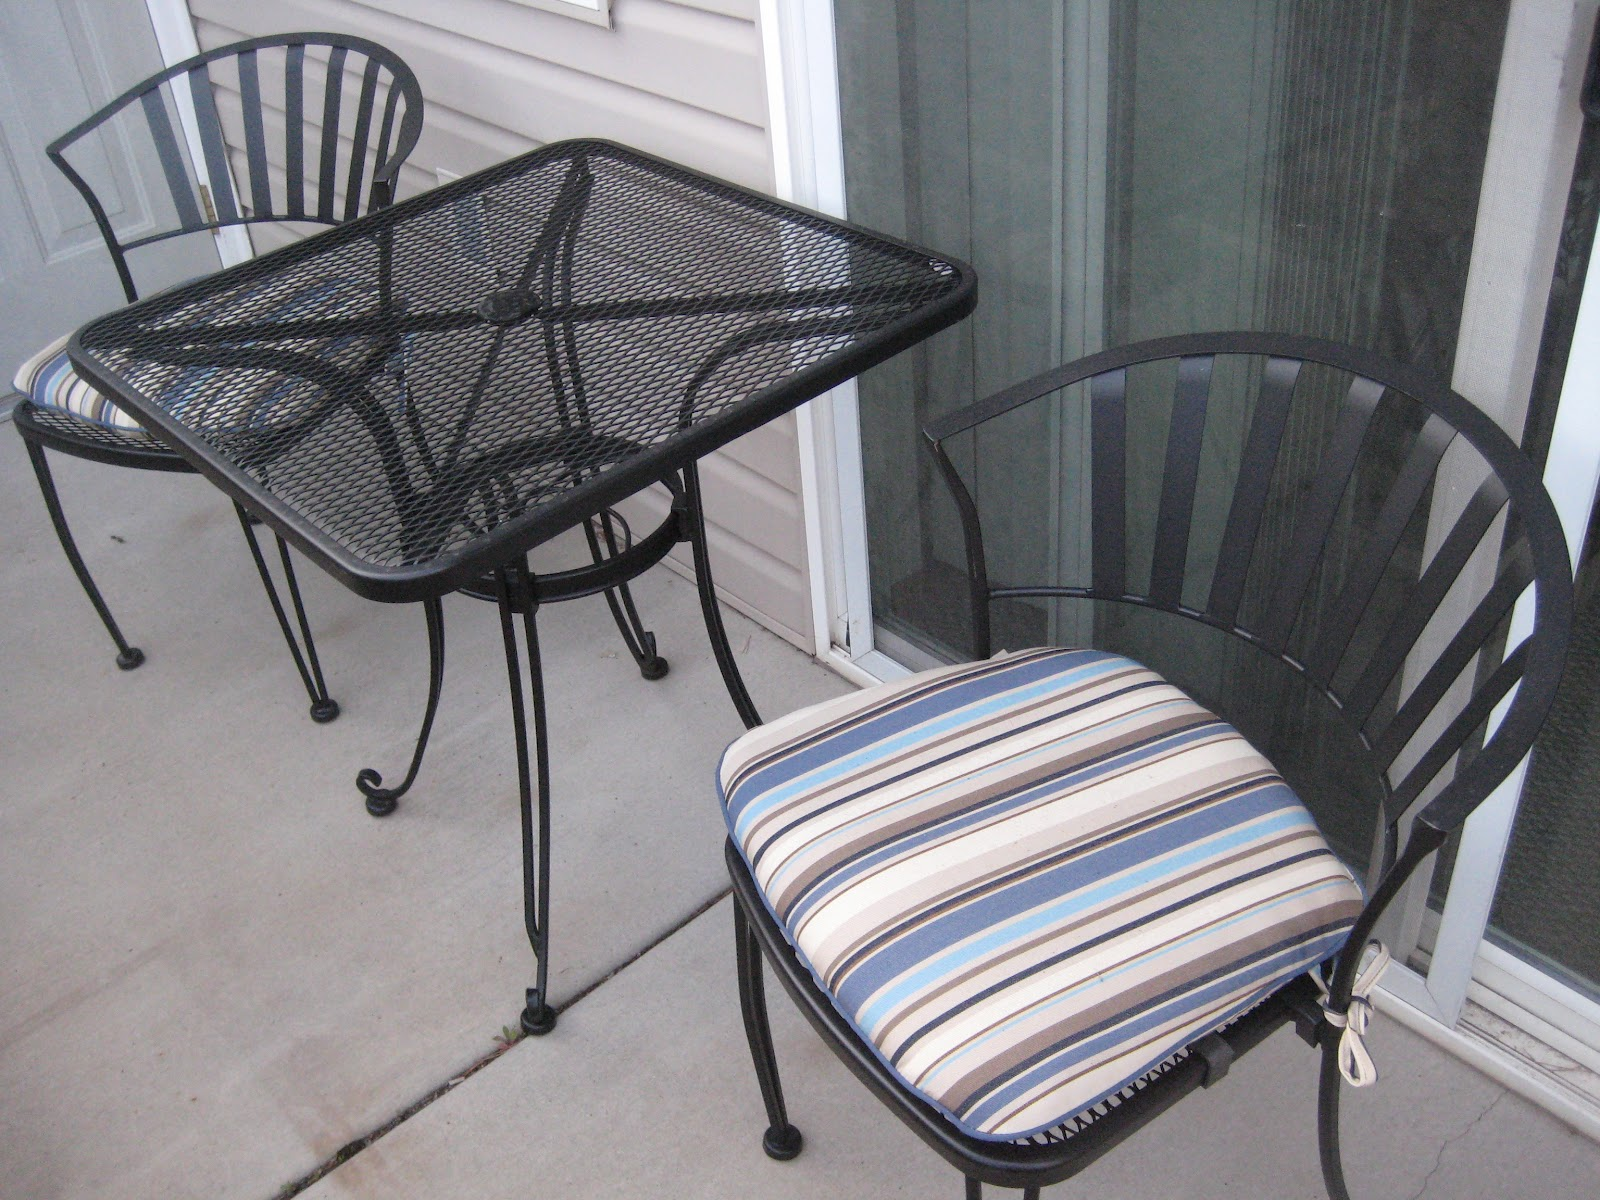 furniture patio clearance with wood and metal outdoor covers set sets lounge who sells teak accent table small garden chairs bistro grey white coffee black decorations wooden file